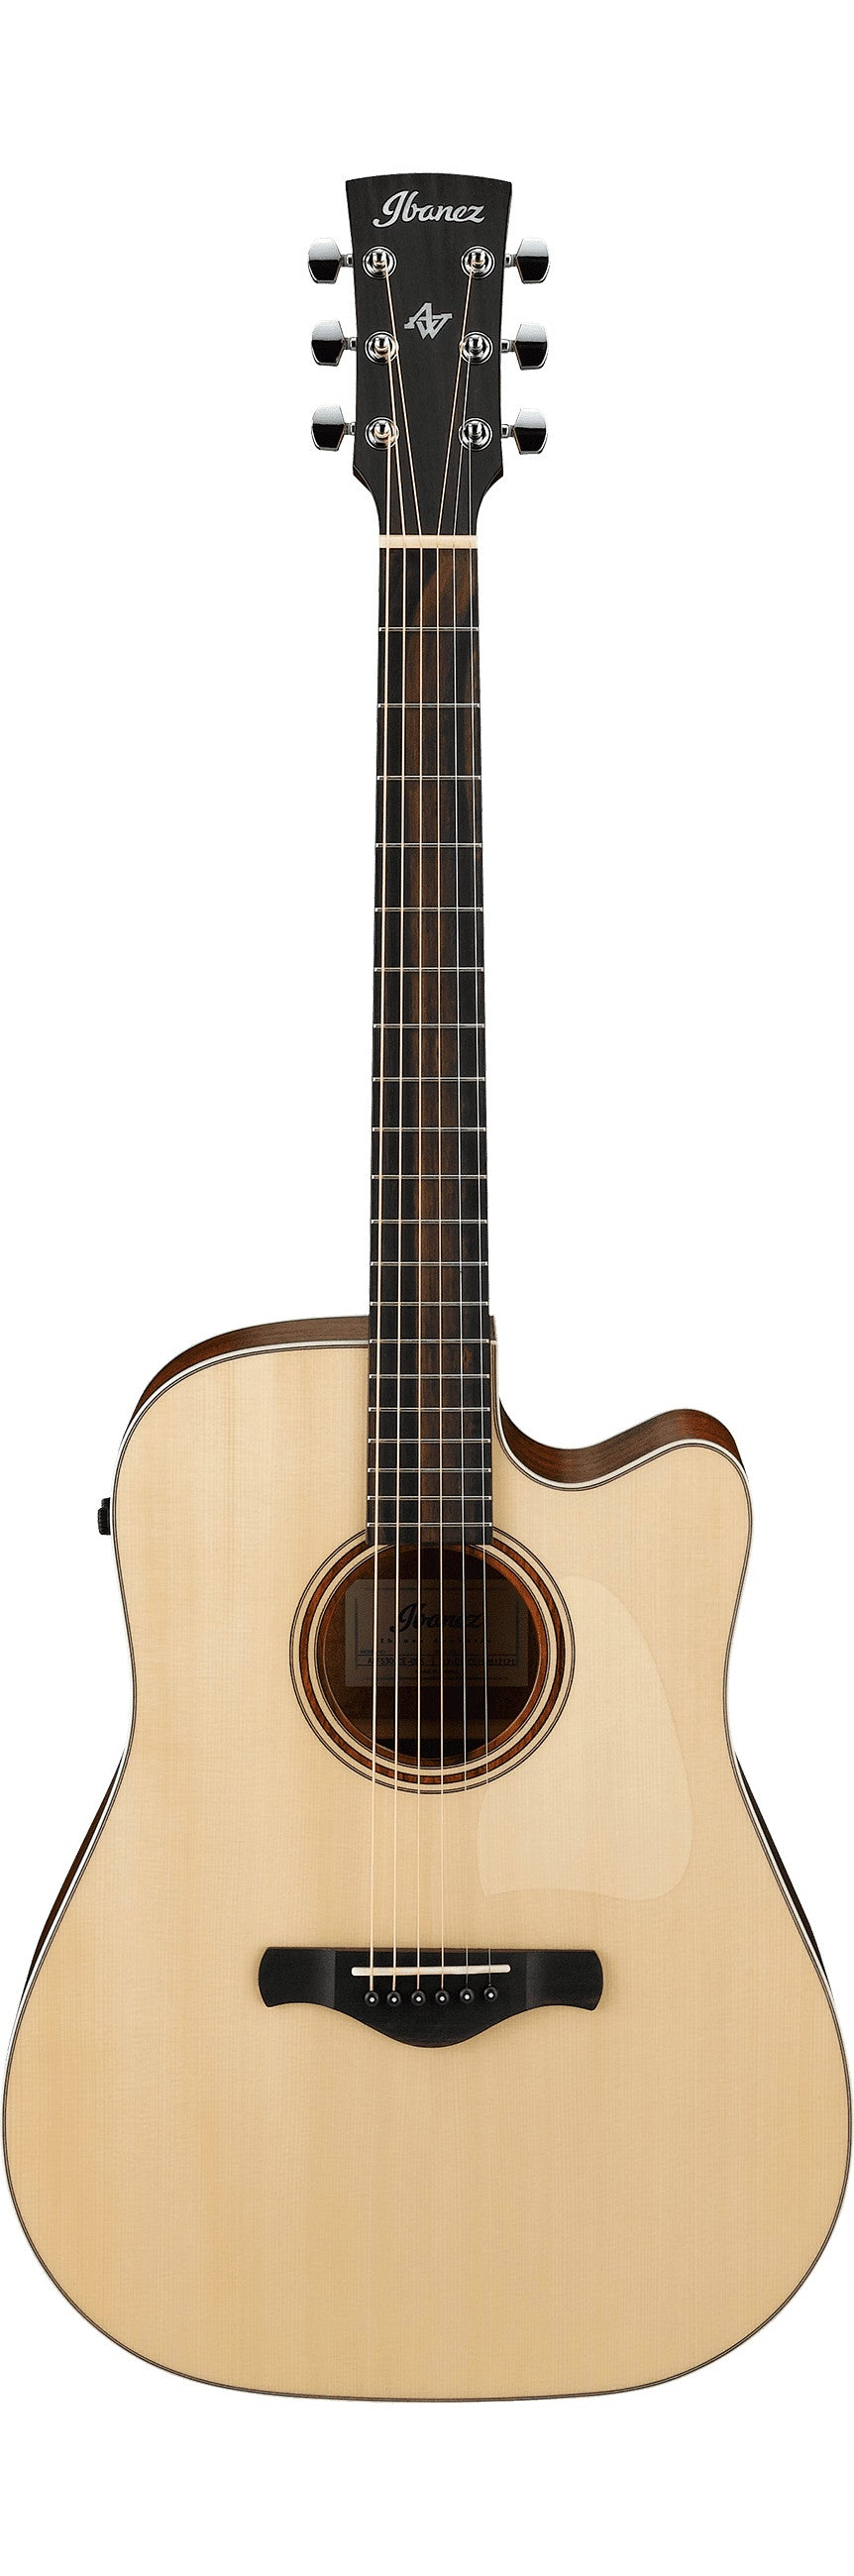 Ibanez ACFS300CE-OPS Artwood Acoustic Guitar - Natural